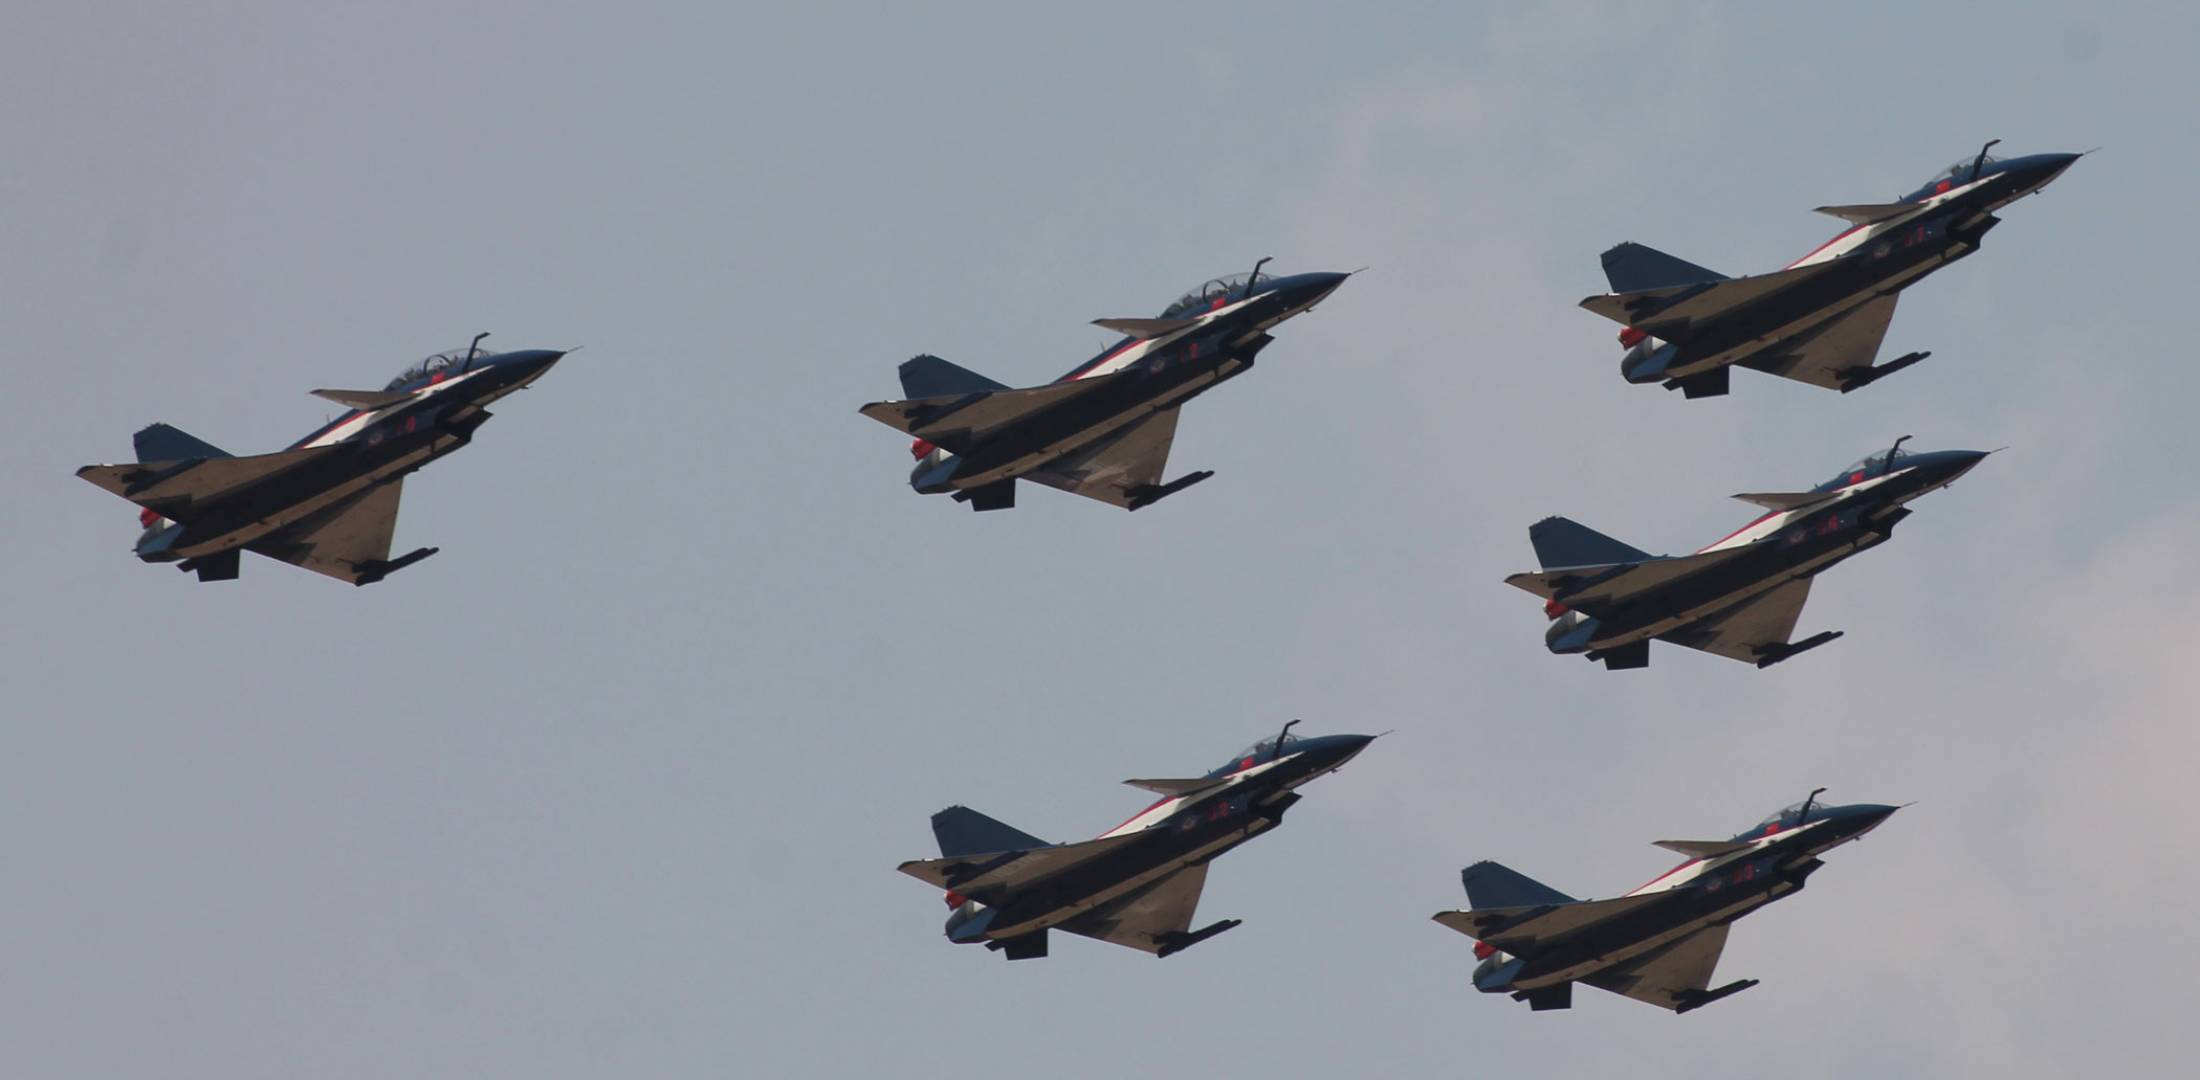 J-10 in formation